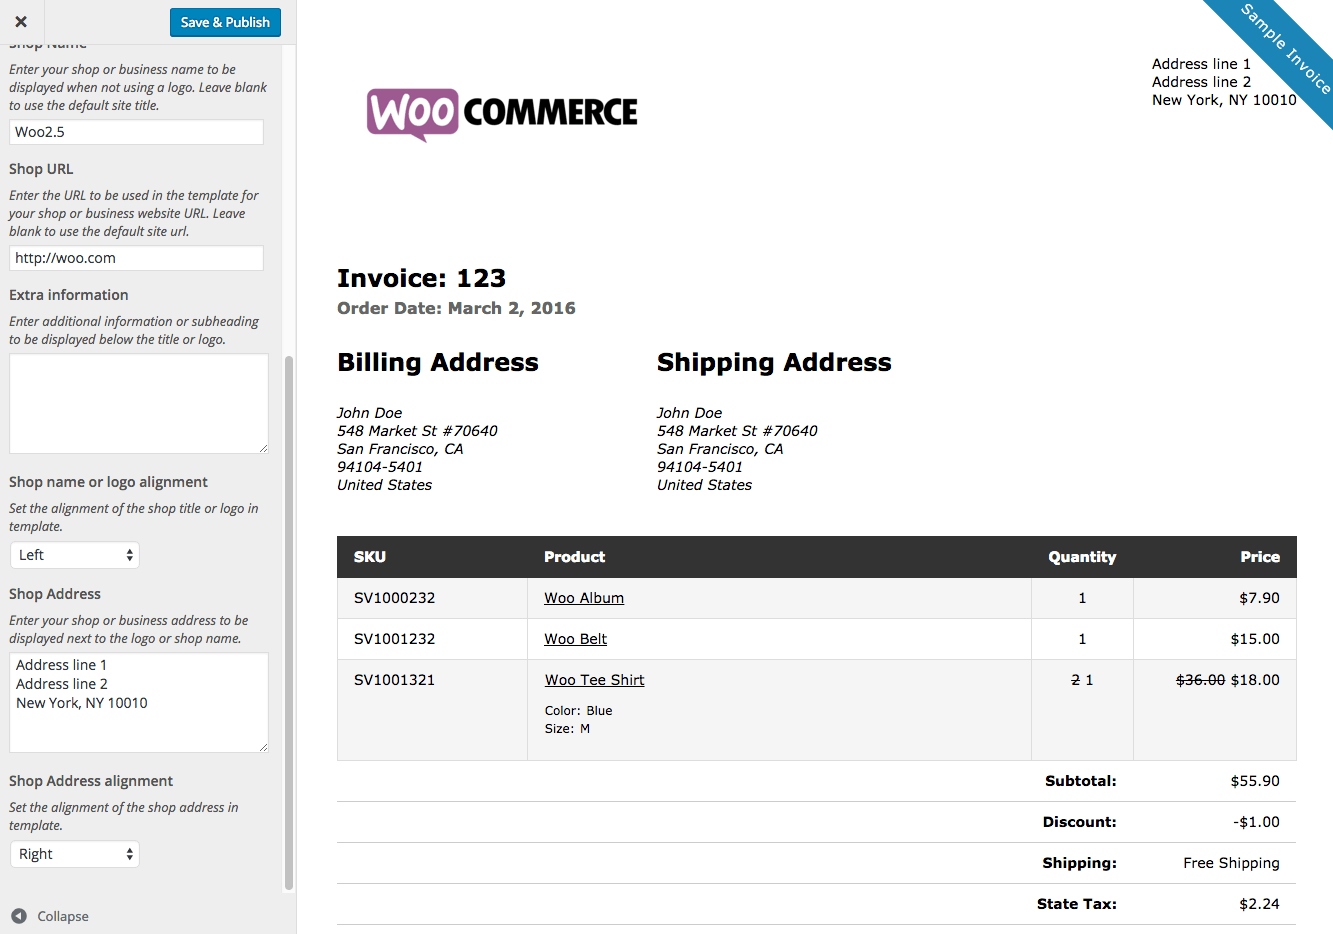 Shopdesignsus  Remarkable Woocommerce Print Invoices Amp Packing Lists  Woocommerce Docs With Luxury Woocommerce Print Invoices  Packing Lists Customizer With Astonishing Free Sample Invoice Template Word Also What Is A Credit Invoice In Addition Quickbooks Import Invoices From Excel And Send Invoice On Ebay As Well As How Write An Invoice Additionally Ford Focus St Invoice Price From Docswoocommercecom With Shopdesignsus  Luxury Woocommerce Print Invoices Amp Packing Lists  Woocommerce Docs With Astonishing Woocommerce Print Invoices  Packing Lists Customizer And Remarkable Free Sample Invoice Template Word Also What Is A Credit Invoice In Addition Quickbooks Import Invoices From Excel From Docswoocommercecom